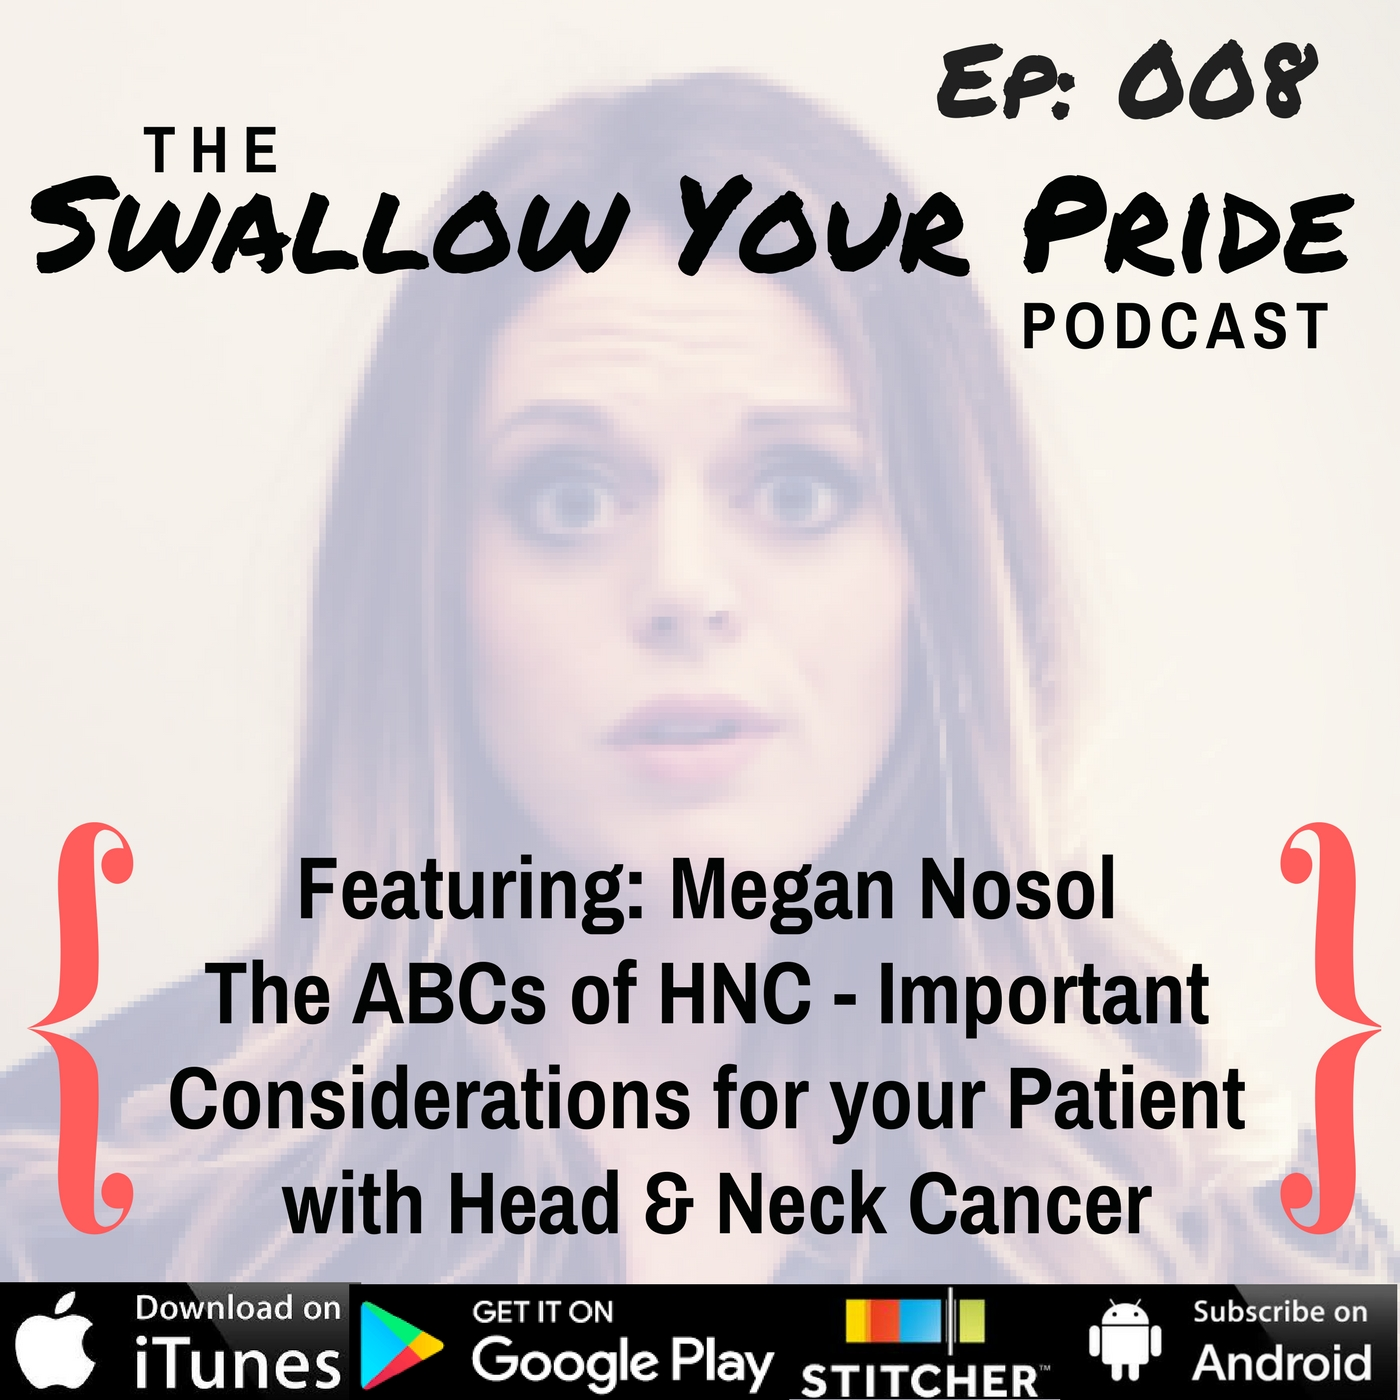 008 – Megan Nosol, M.S., CCC-SLP – The ABCs of HNC – Important Considerations for your Patient with Head & Neck Cancer